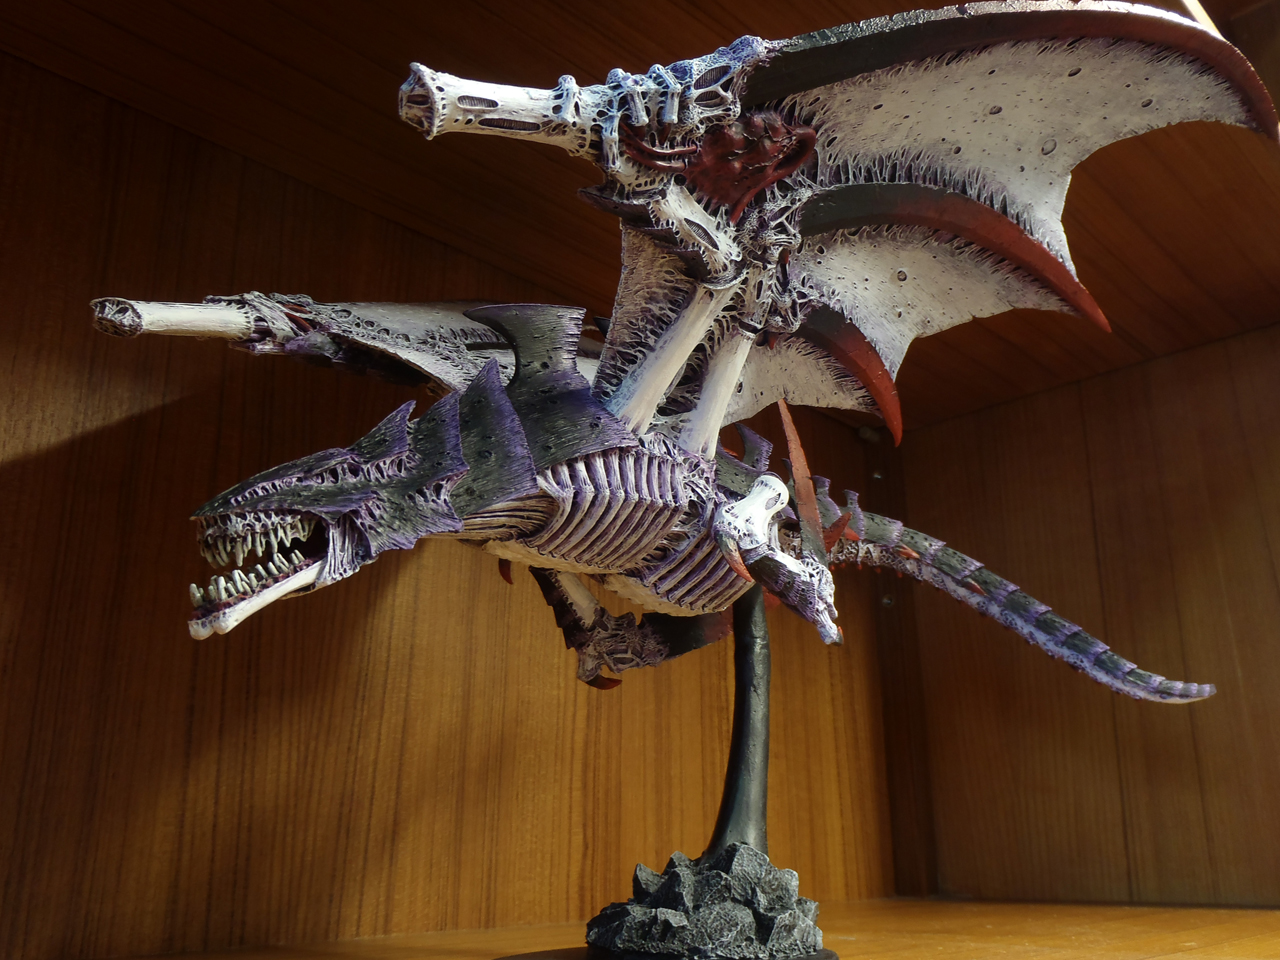 The Tyranid Harridan by DeathShadowSun